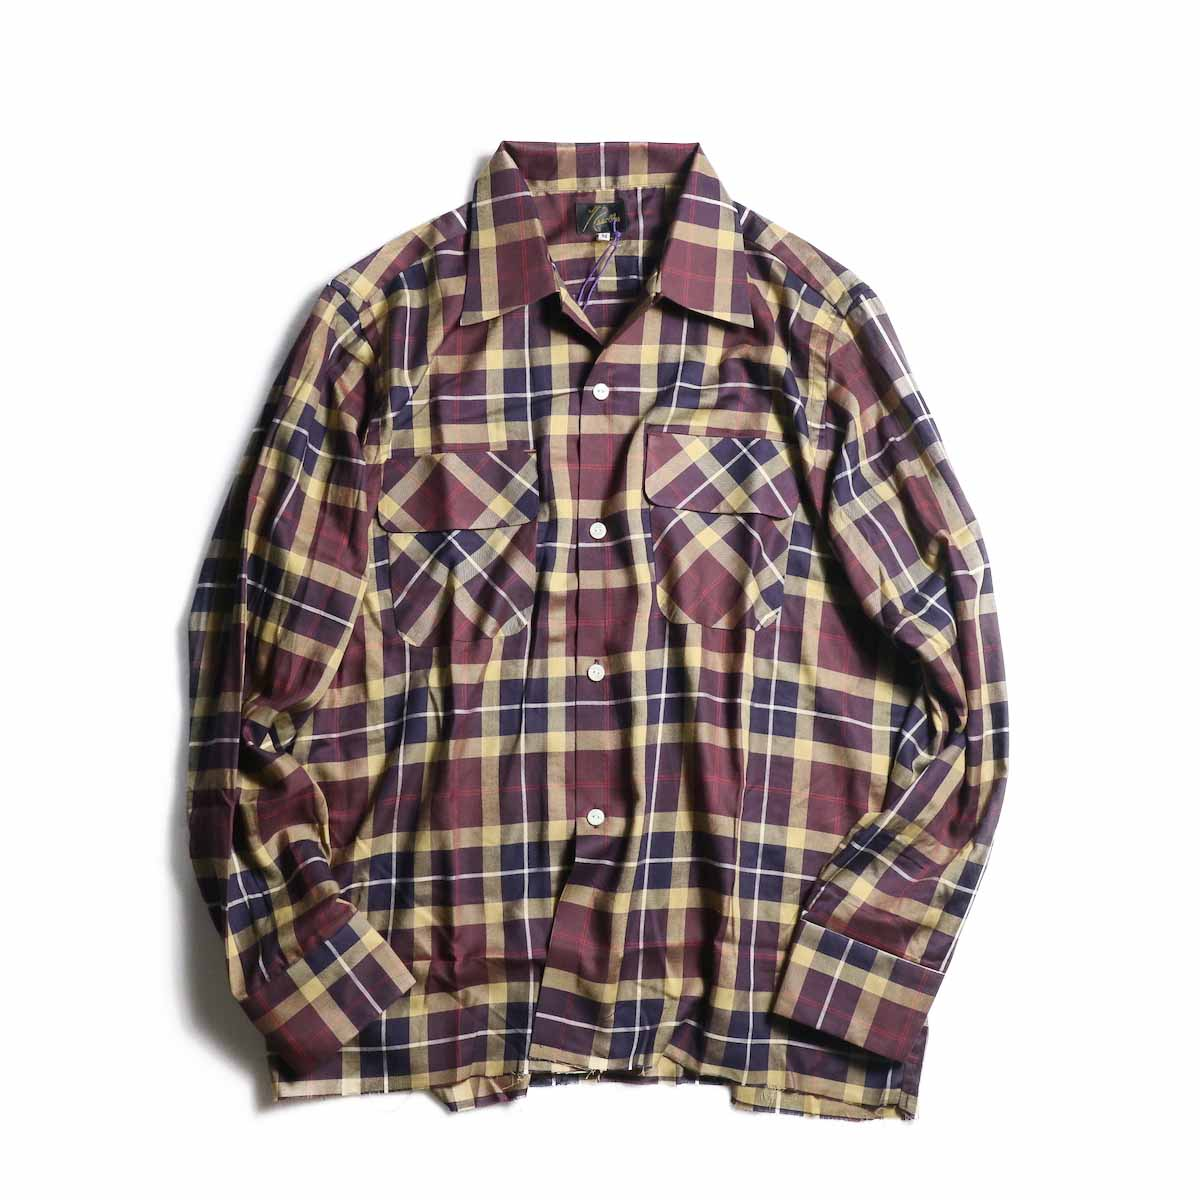 NEEDLES / Cut-Off Bottom Classic Shirt -r/c Plaid Twill (Bordeaux)